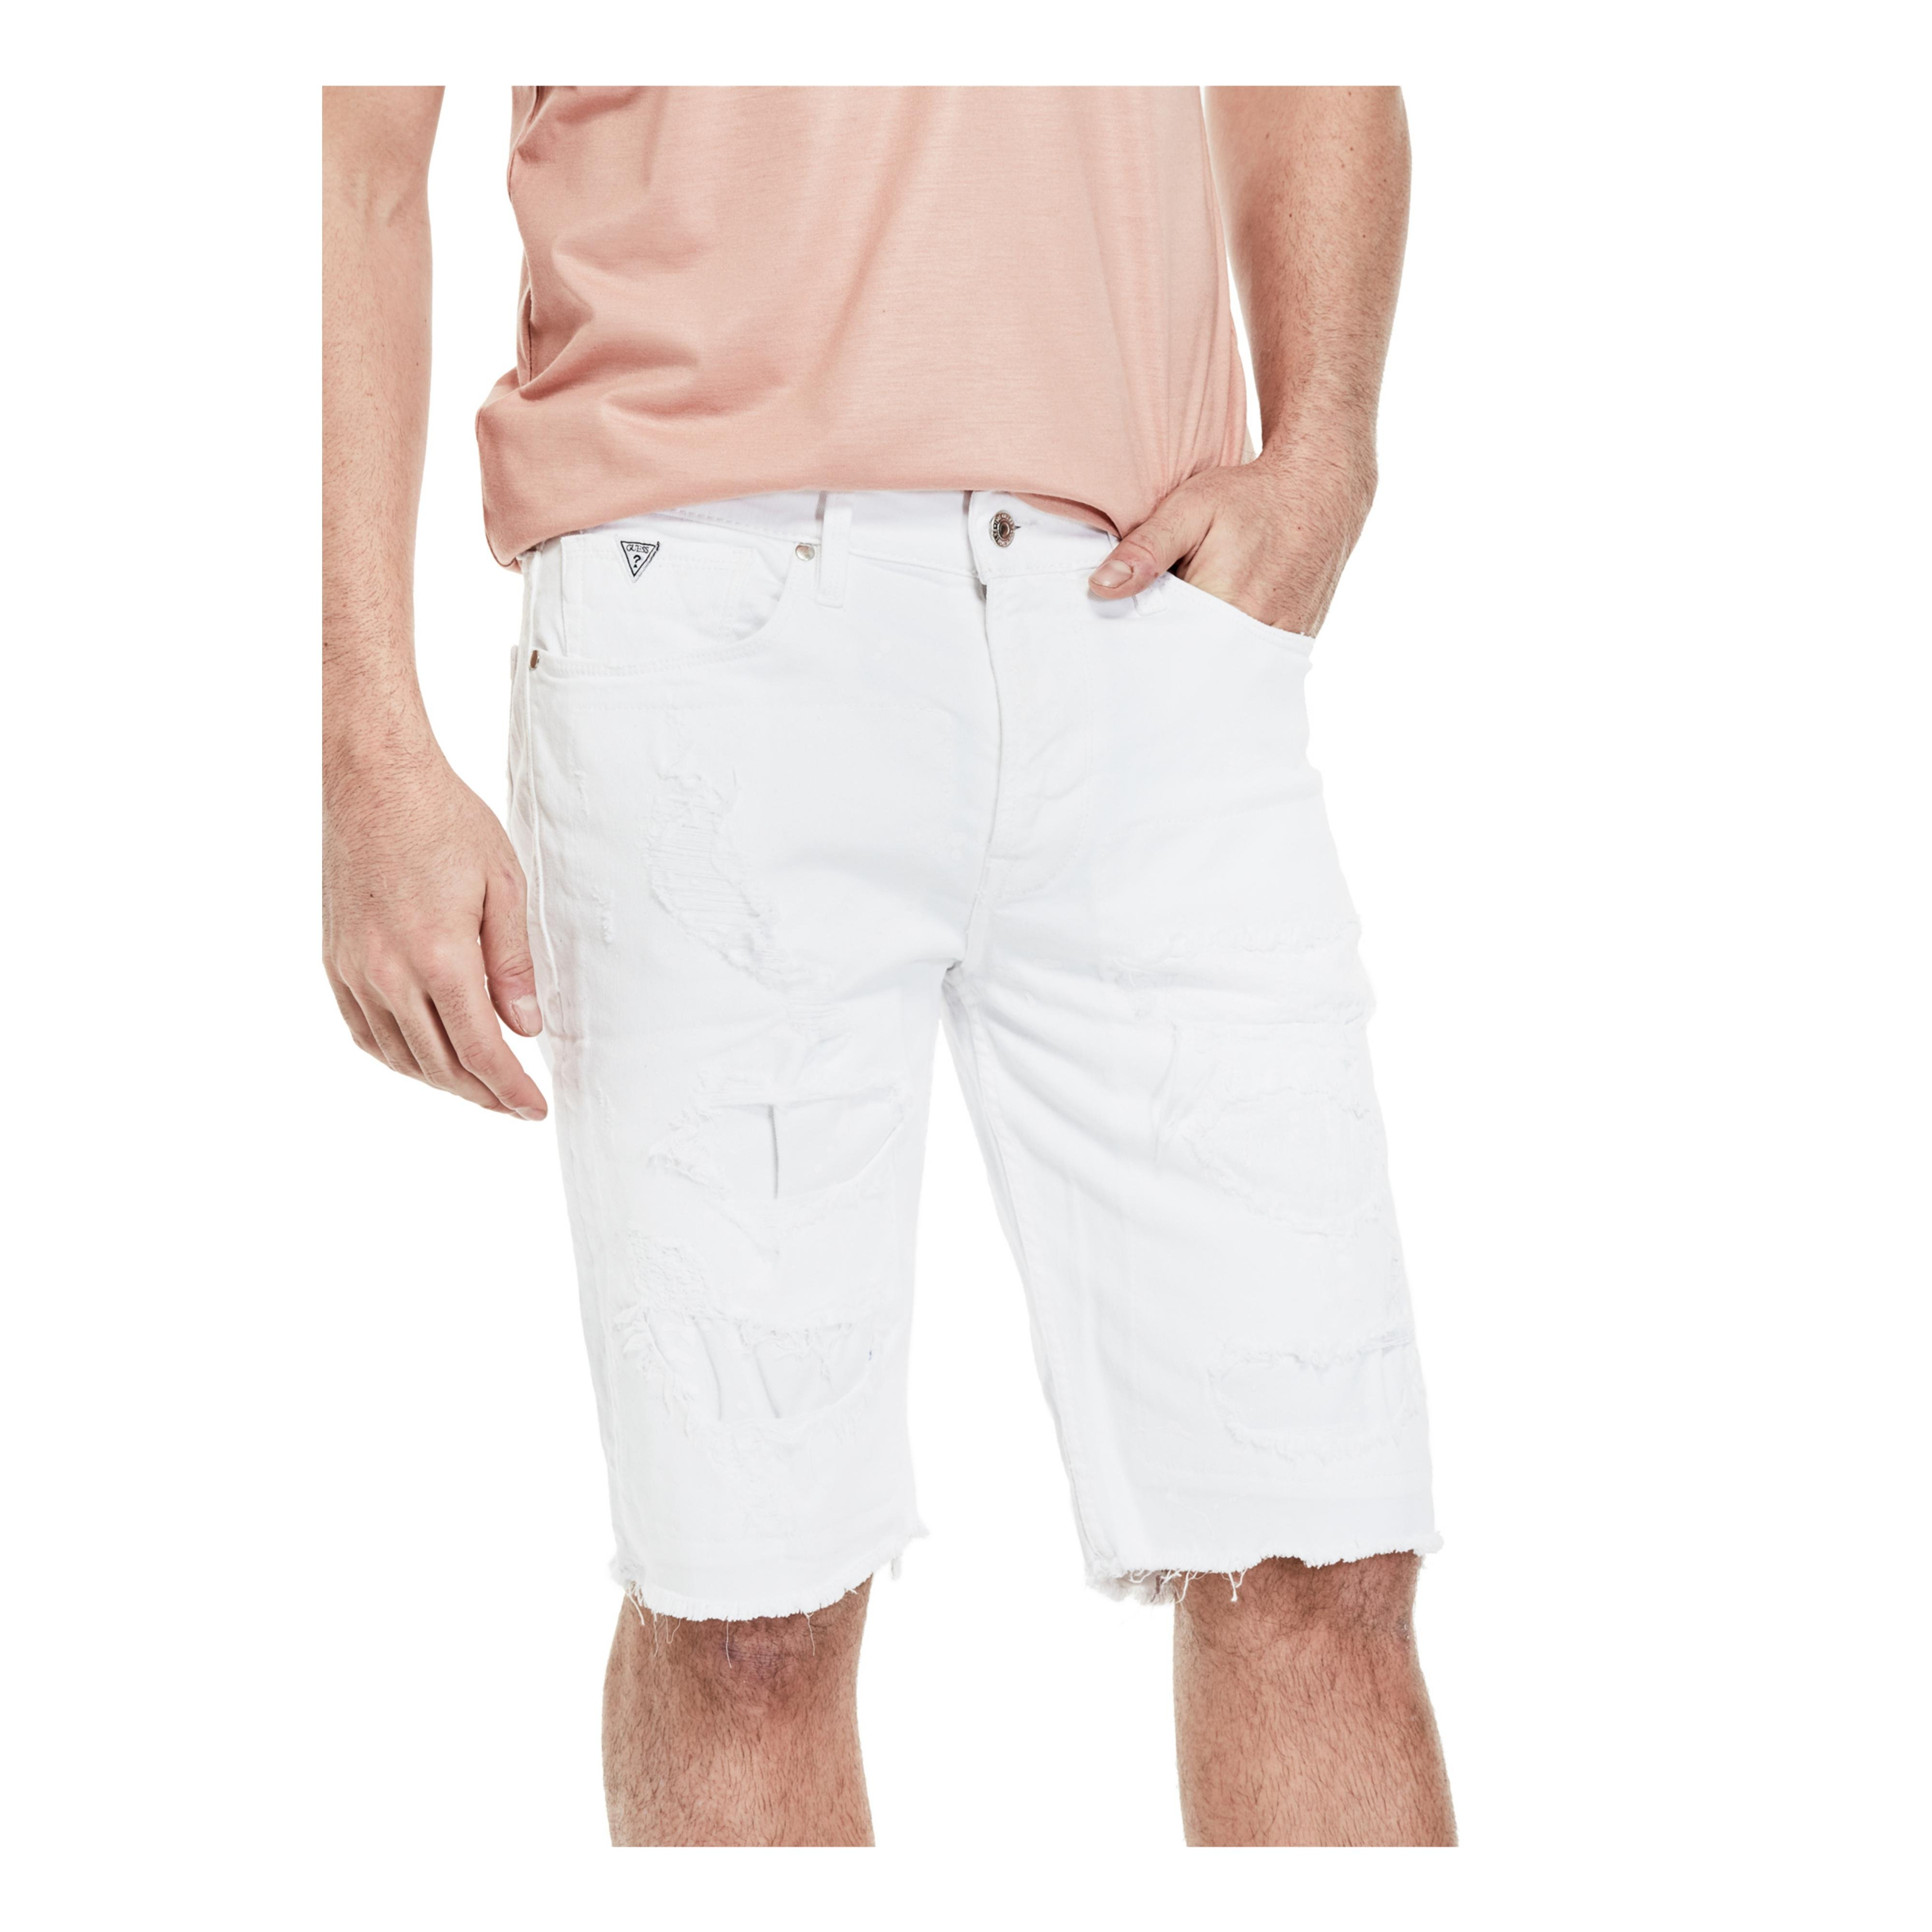 09f41c5825 Lyst - Guess Slim Raw-edge Denim Shorts in White for Men